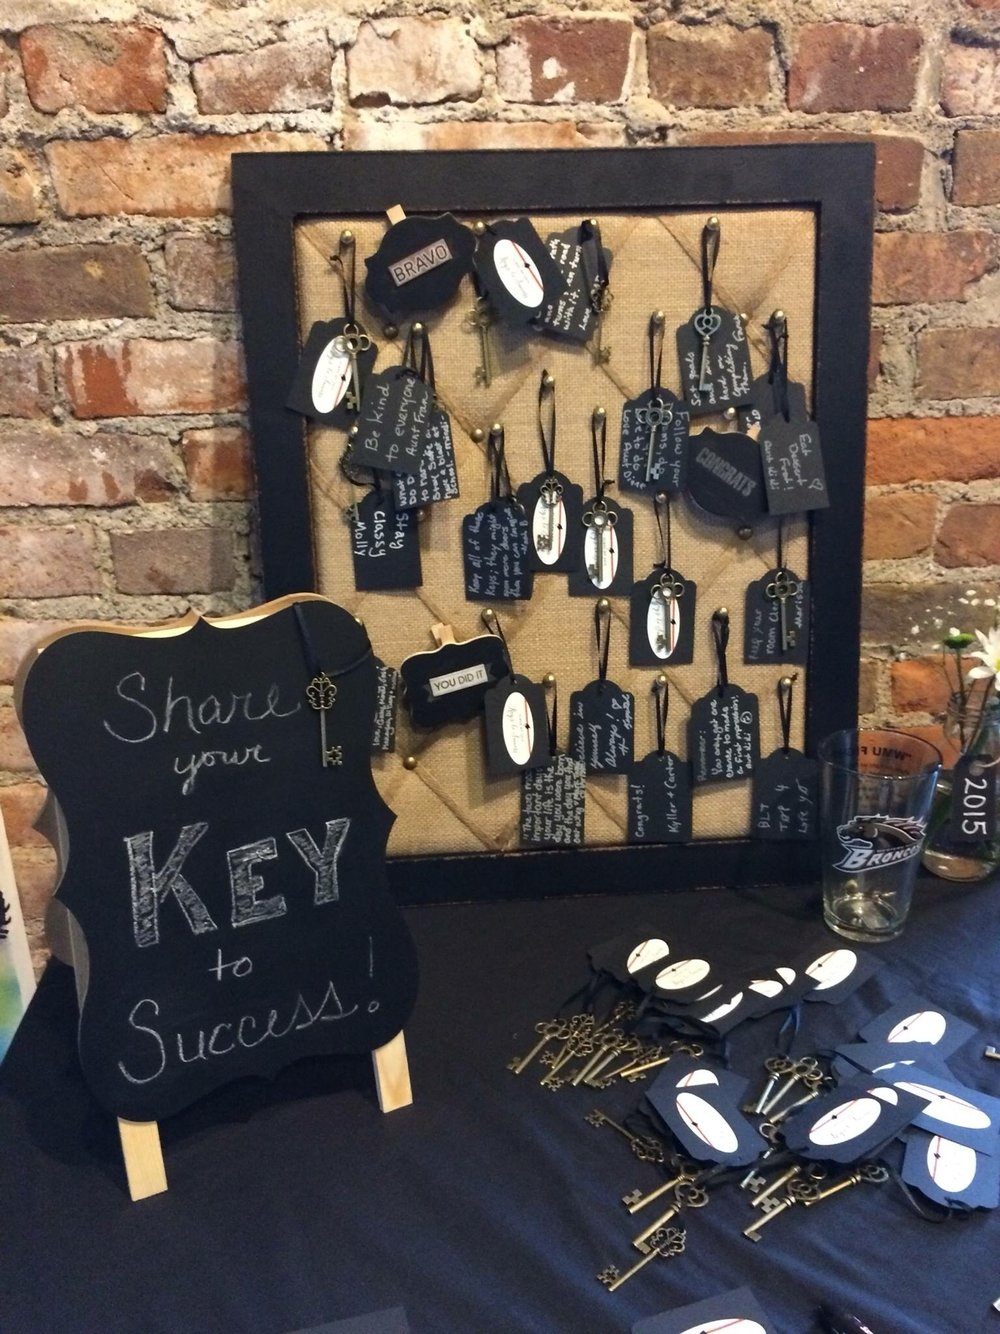 10 Awesome Graduation Party Ideas For Guys grad party keys to success table graduation party ideas for guys 2021